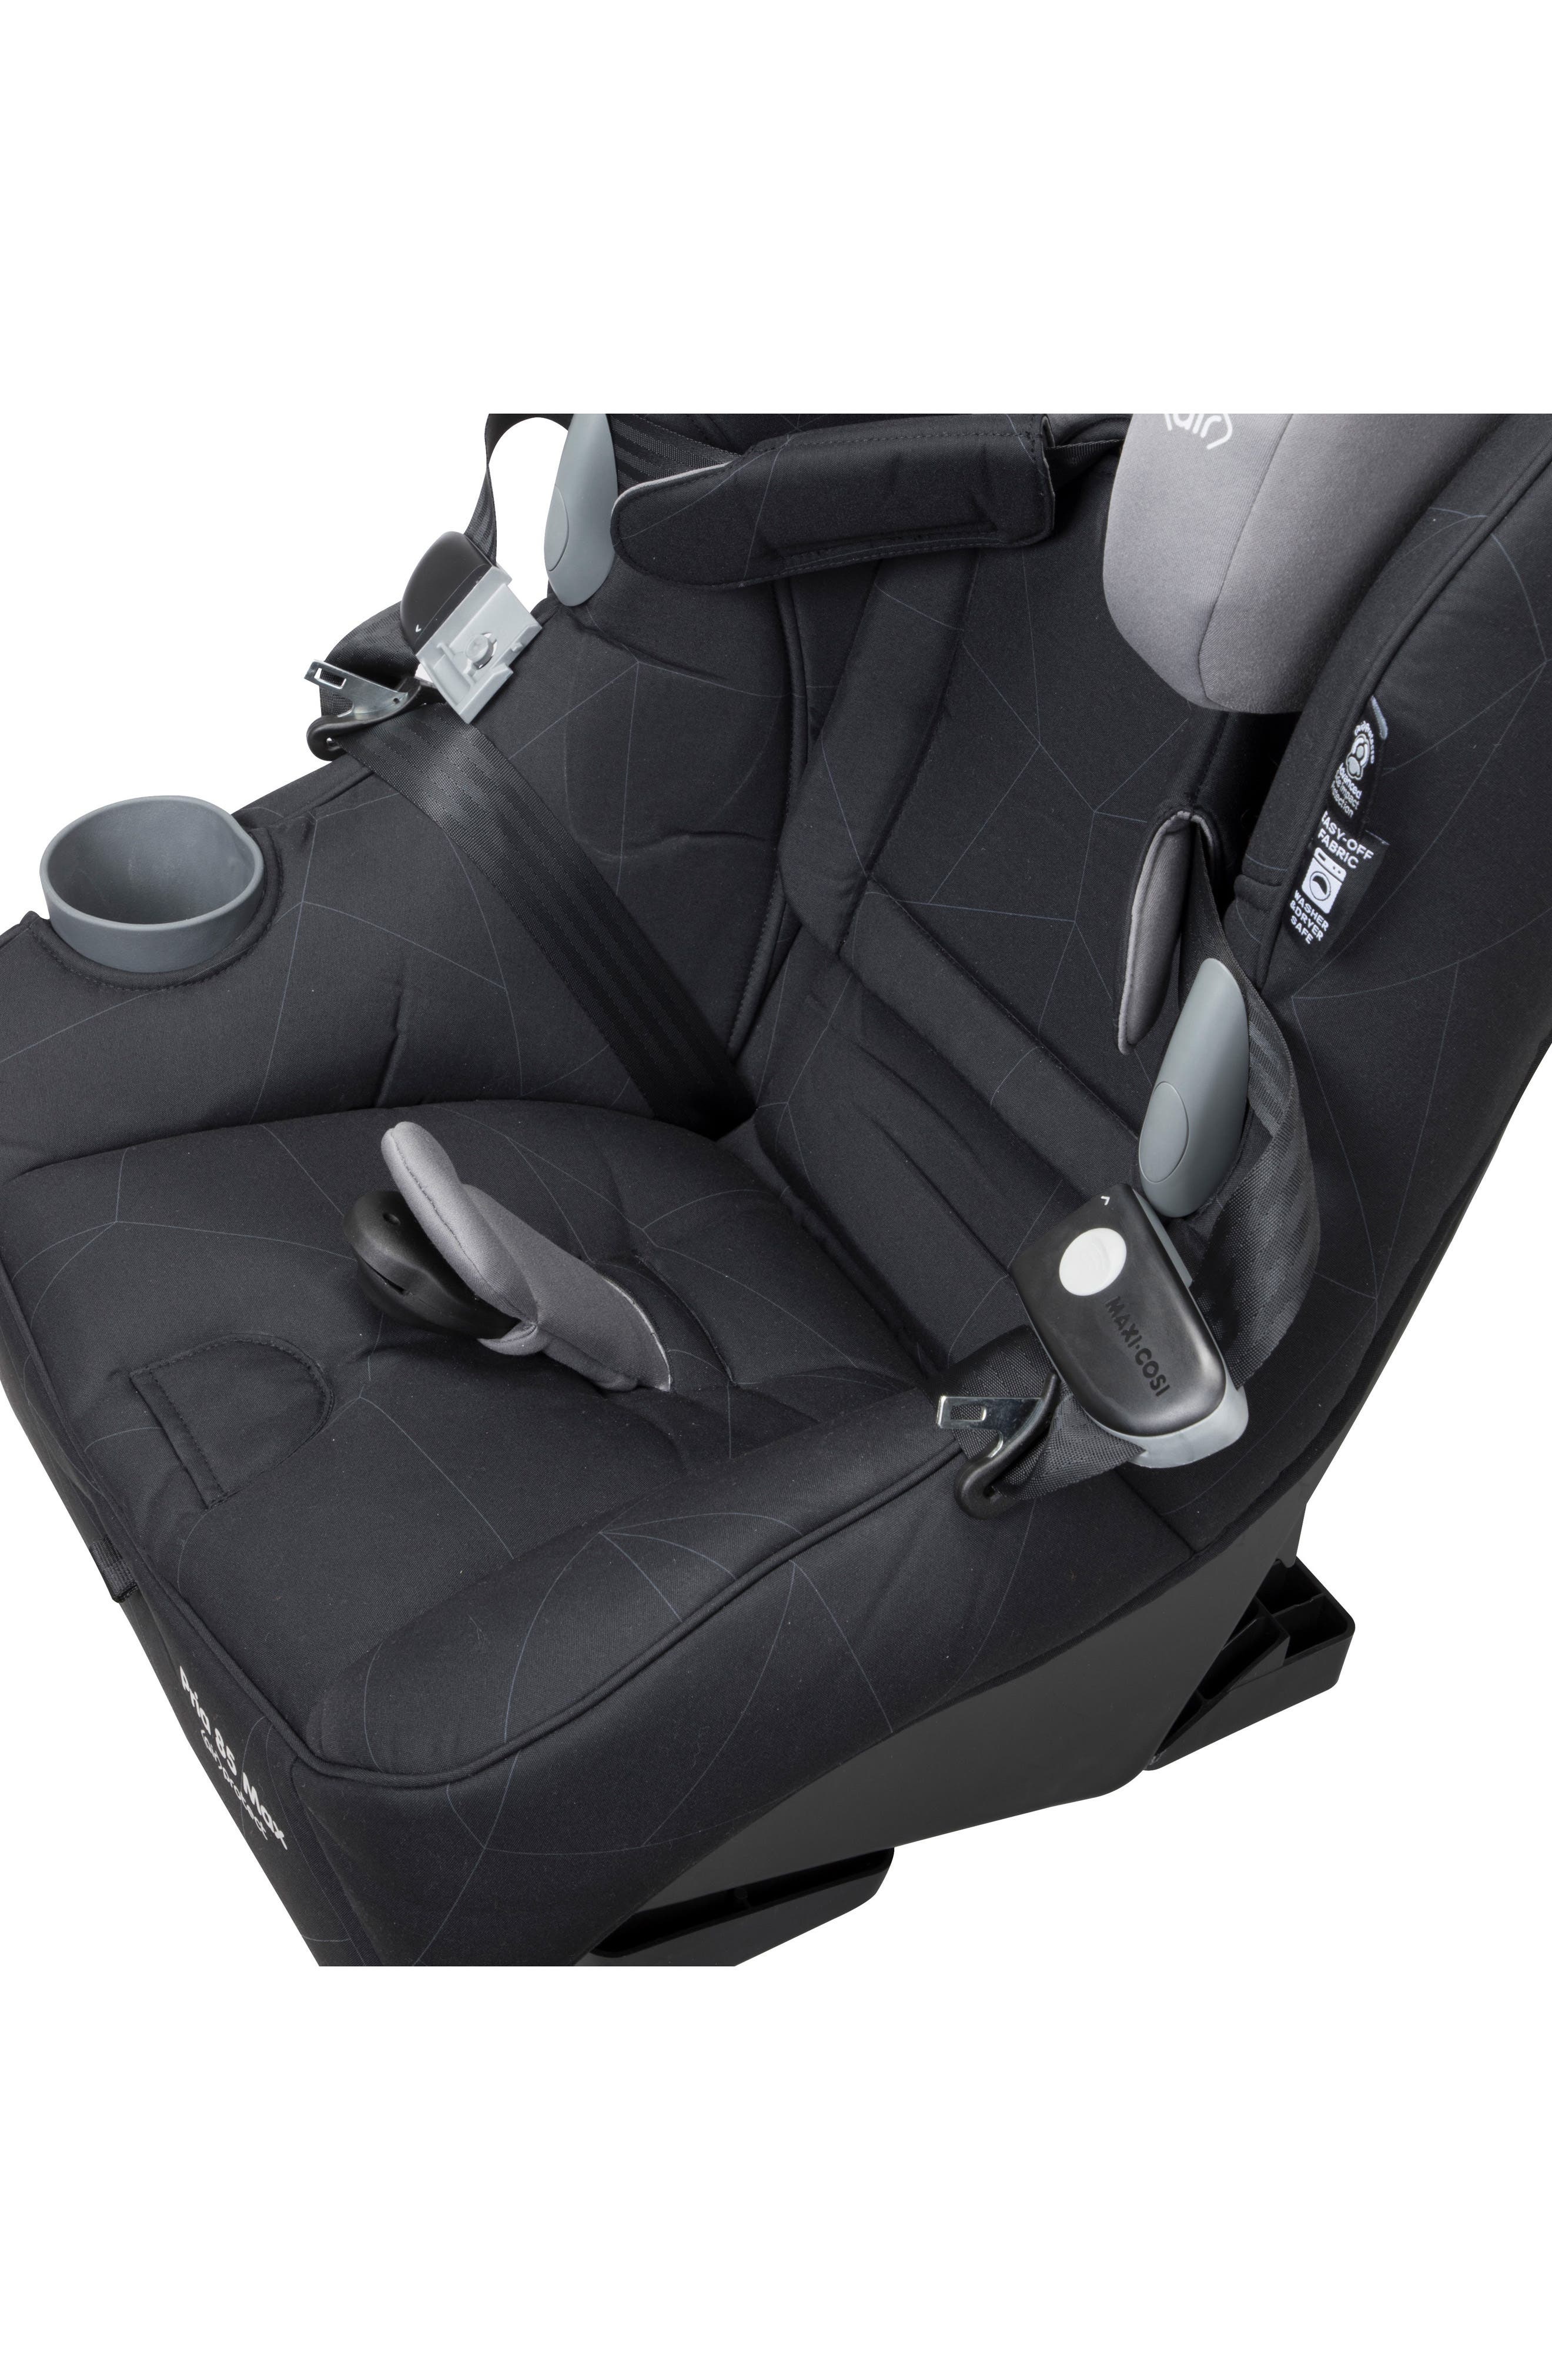 Pria<sup>™</sup> 85 Max Convertible Car Seat,                             Alternate thumbnail 4, color,                             DIAMOND LINES